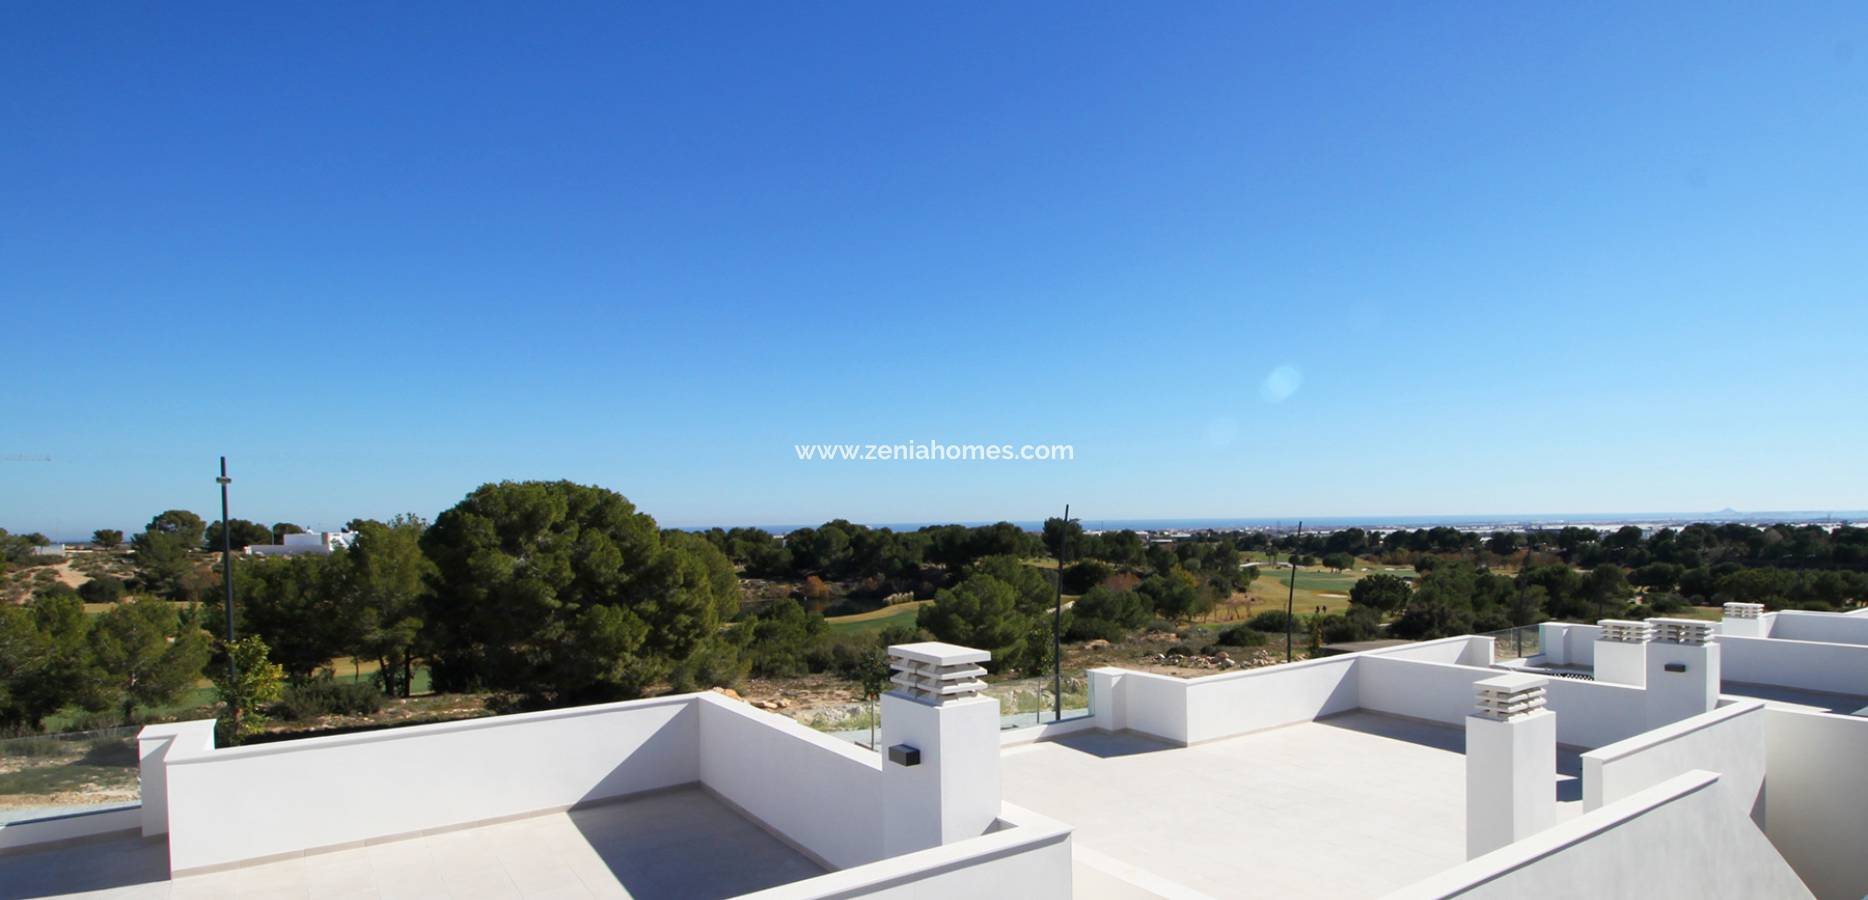 New Build - Semi-Detached Villa - Pilar de la Horadada